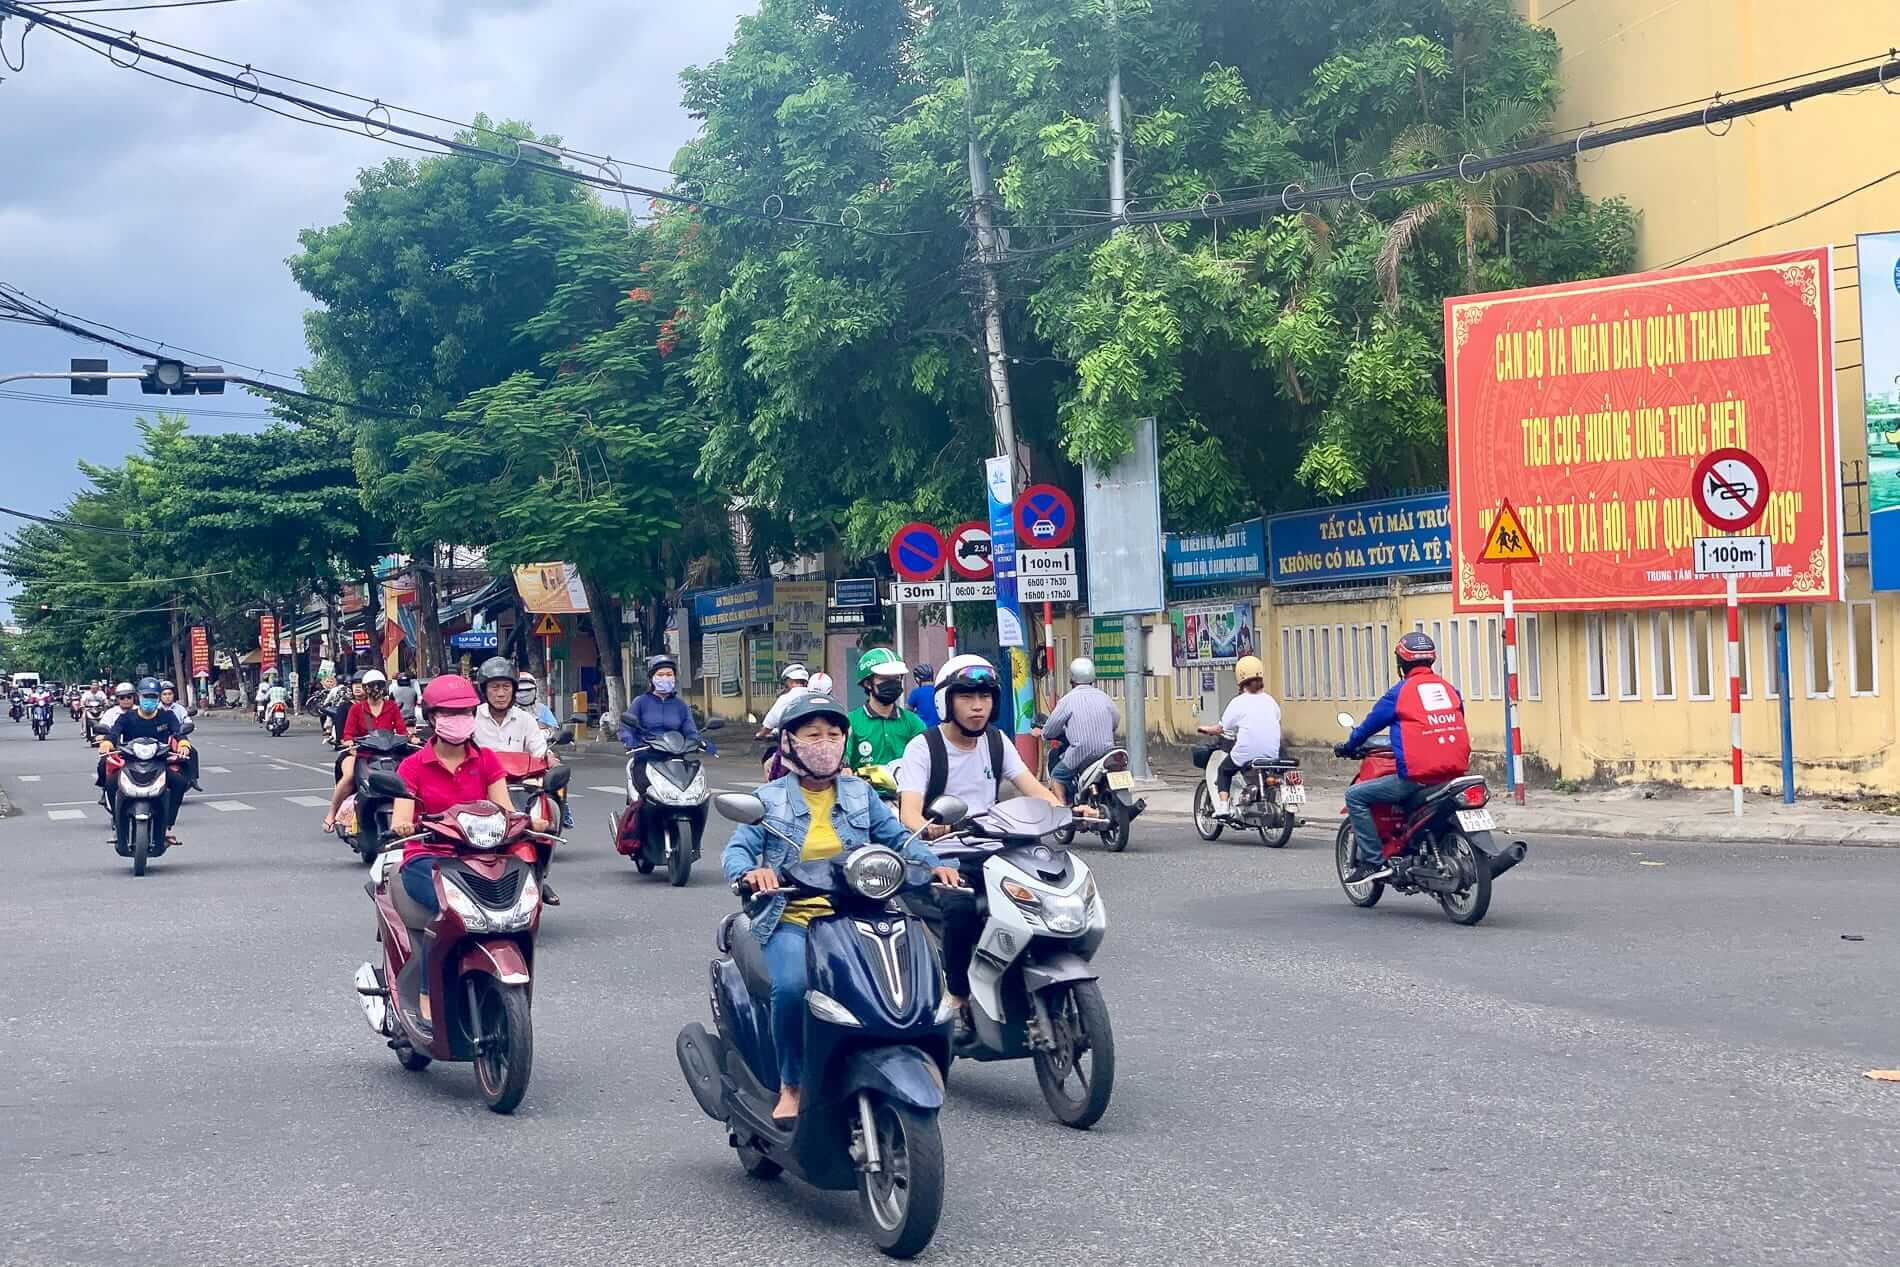 Motorbikes on the streets of Da Nang